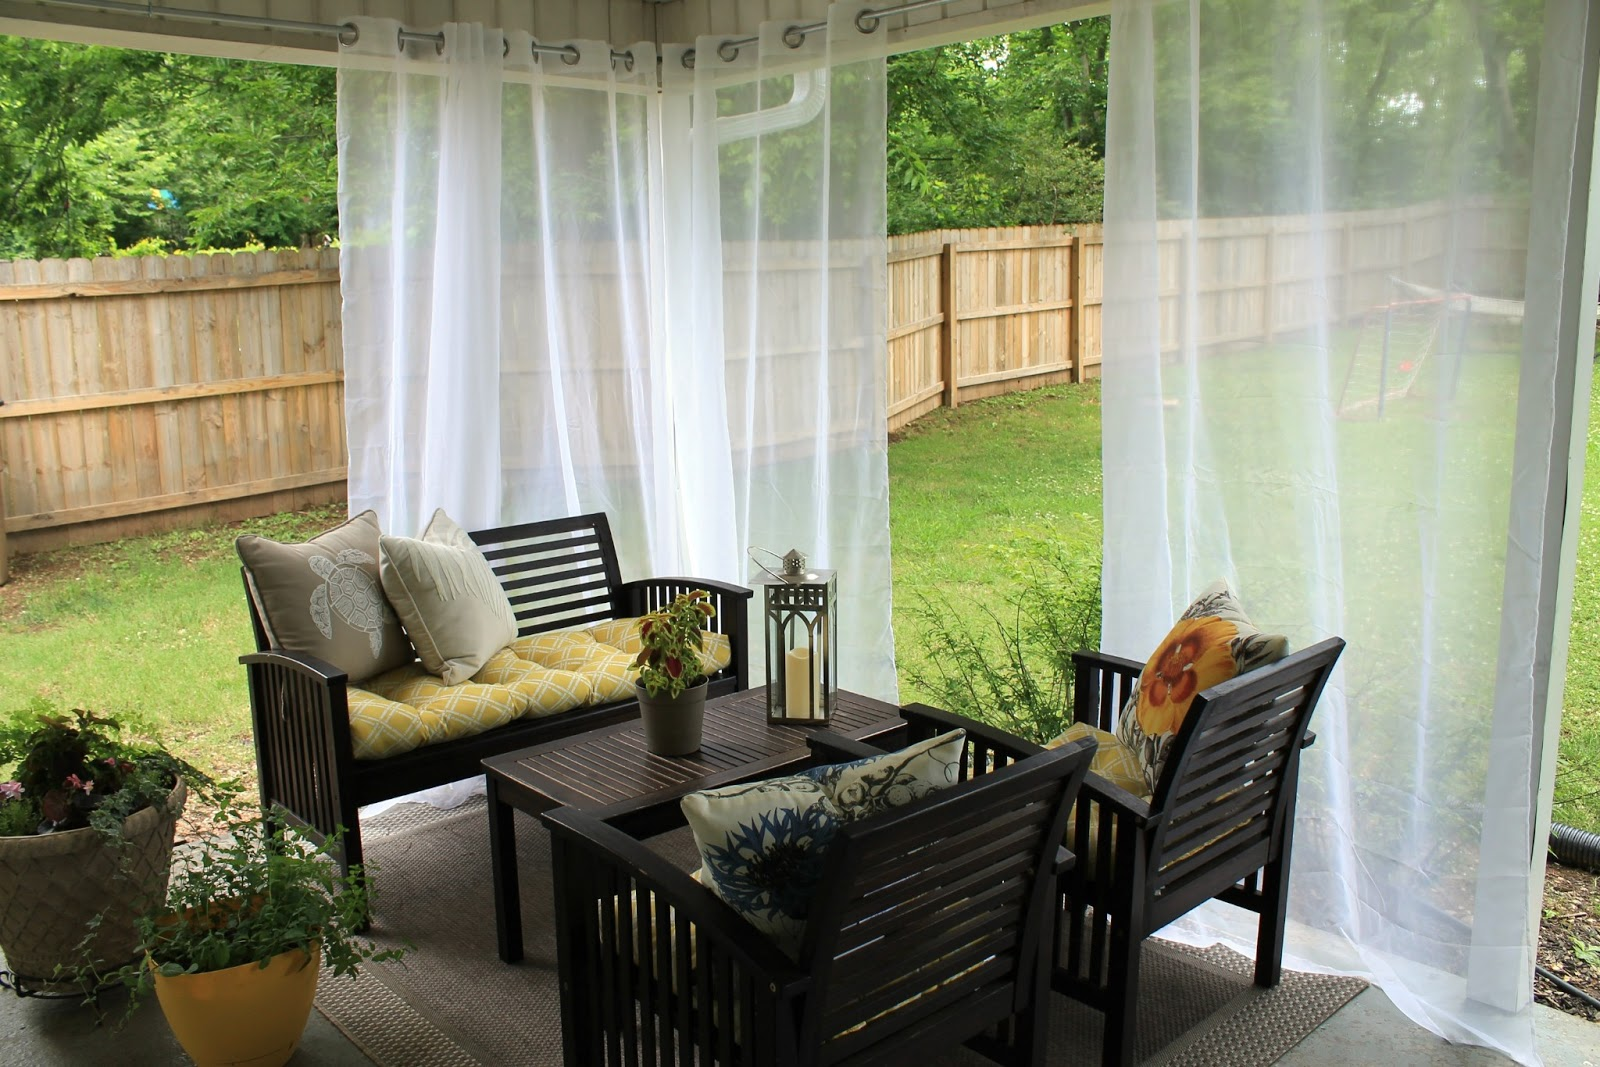 Outdoor curtain rod ideas - Outdoor Curtain Rod Ideas